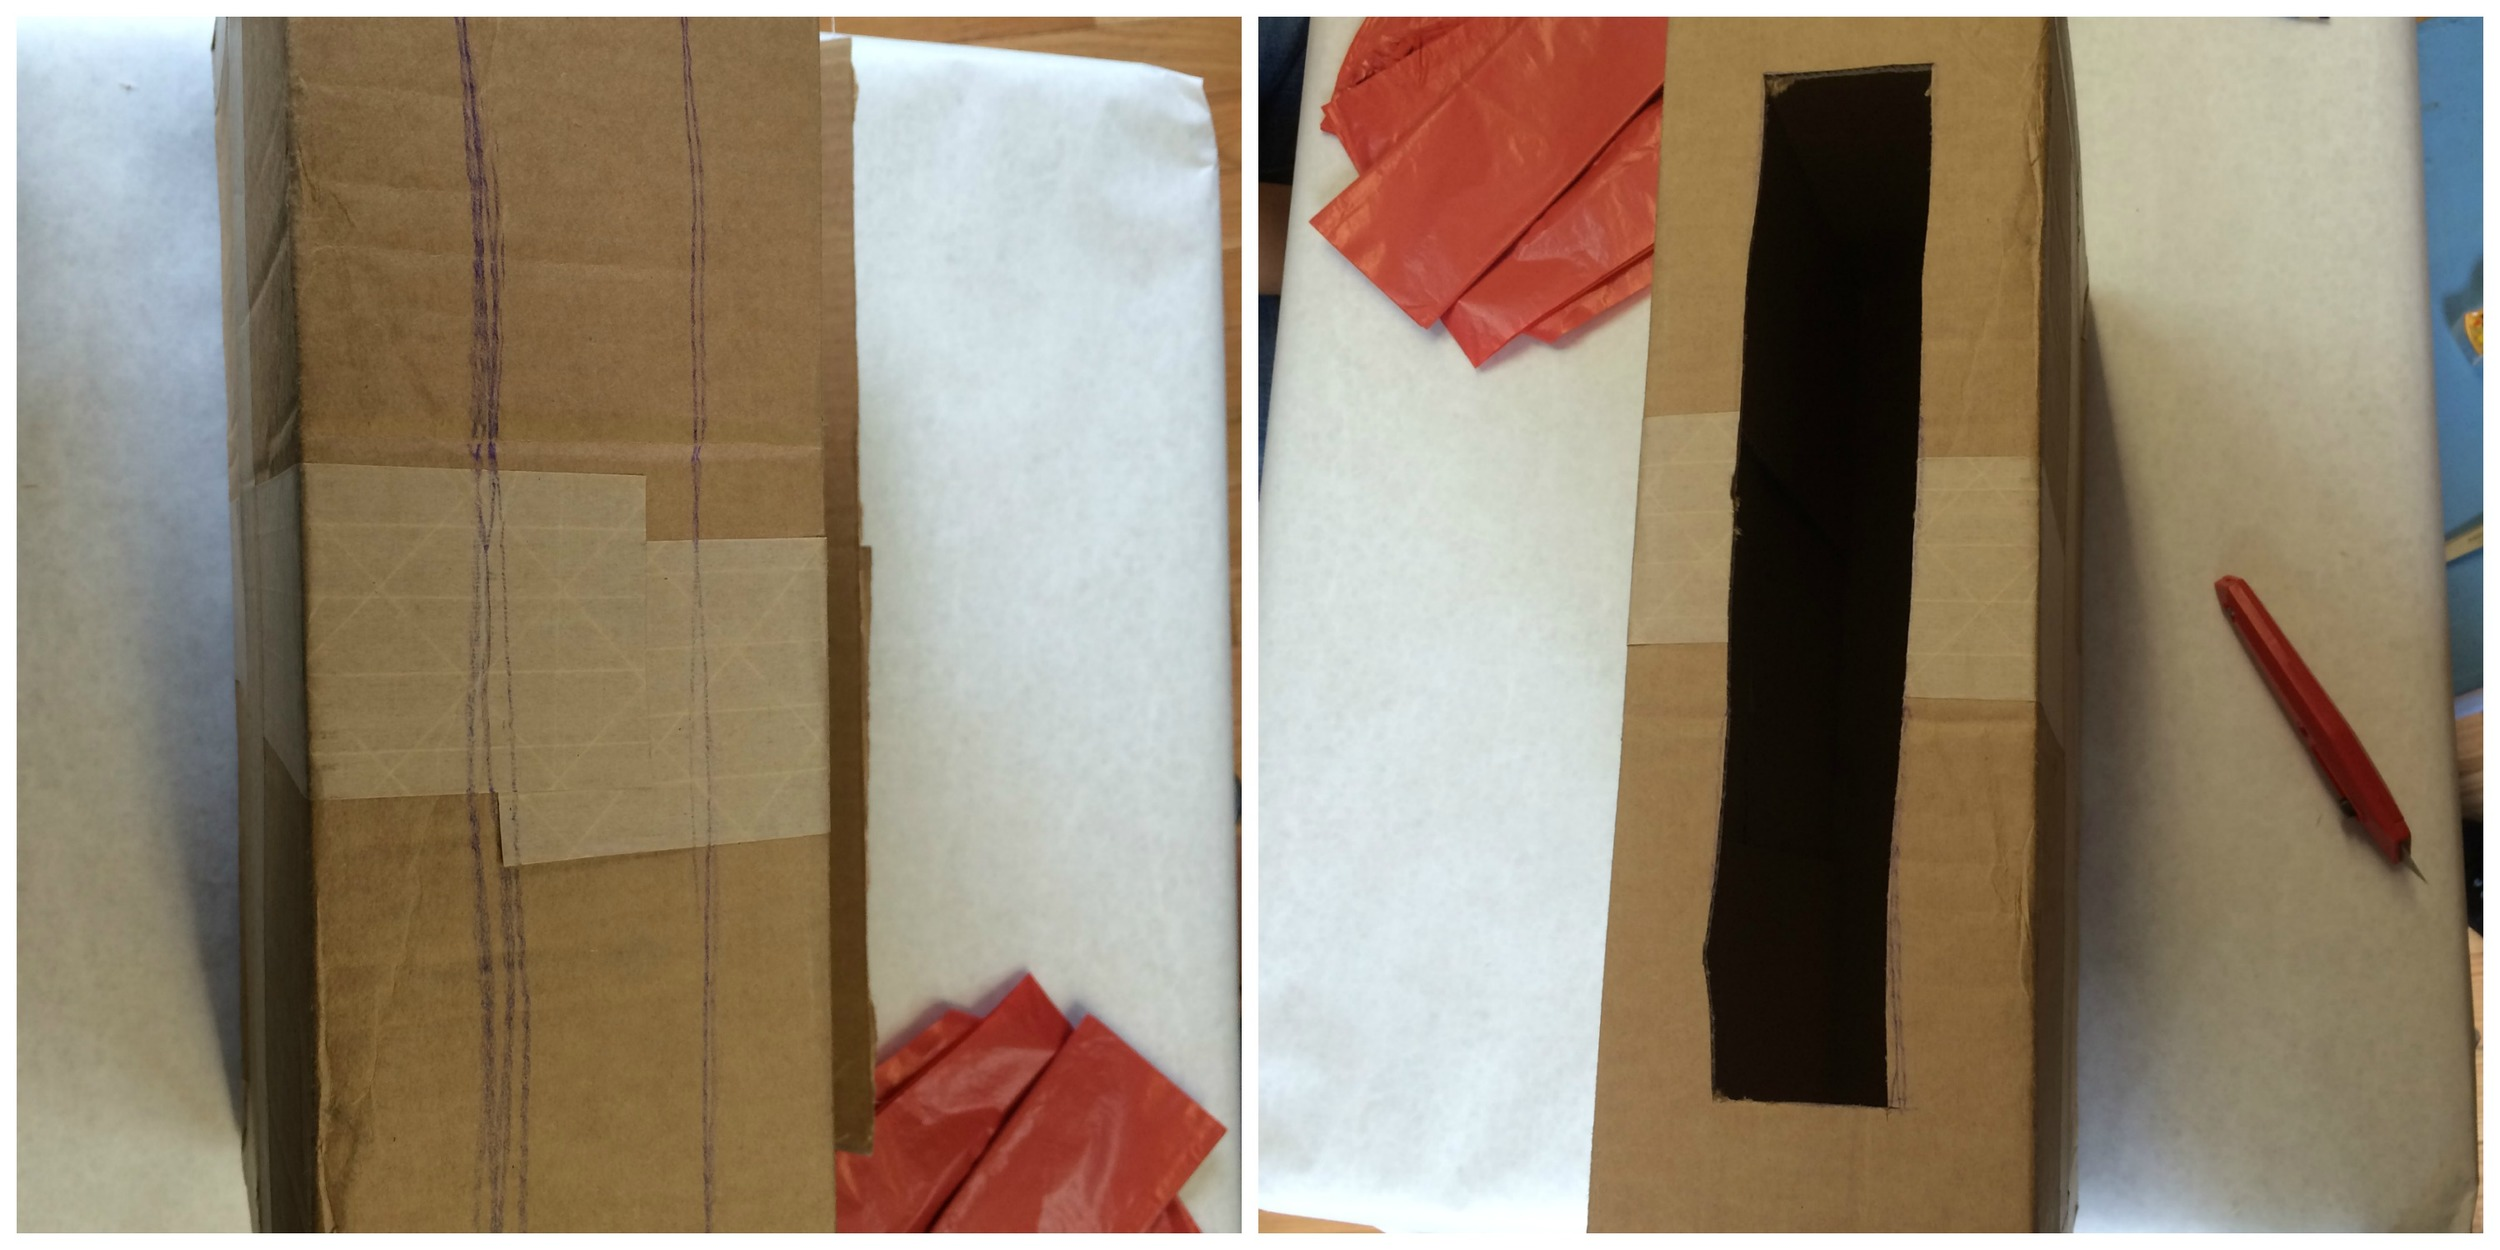 1. Outline a long rectangle along the top of the box. Cut this out with the box cutter. This is where you will be able to lower in puppets that are manipulated from above, like marionettes.